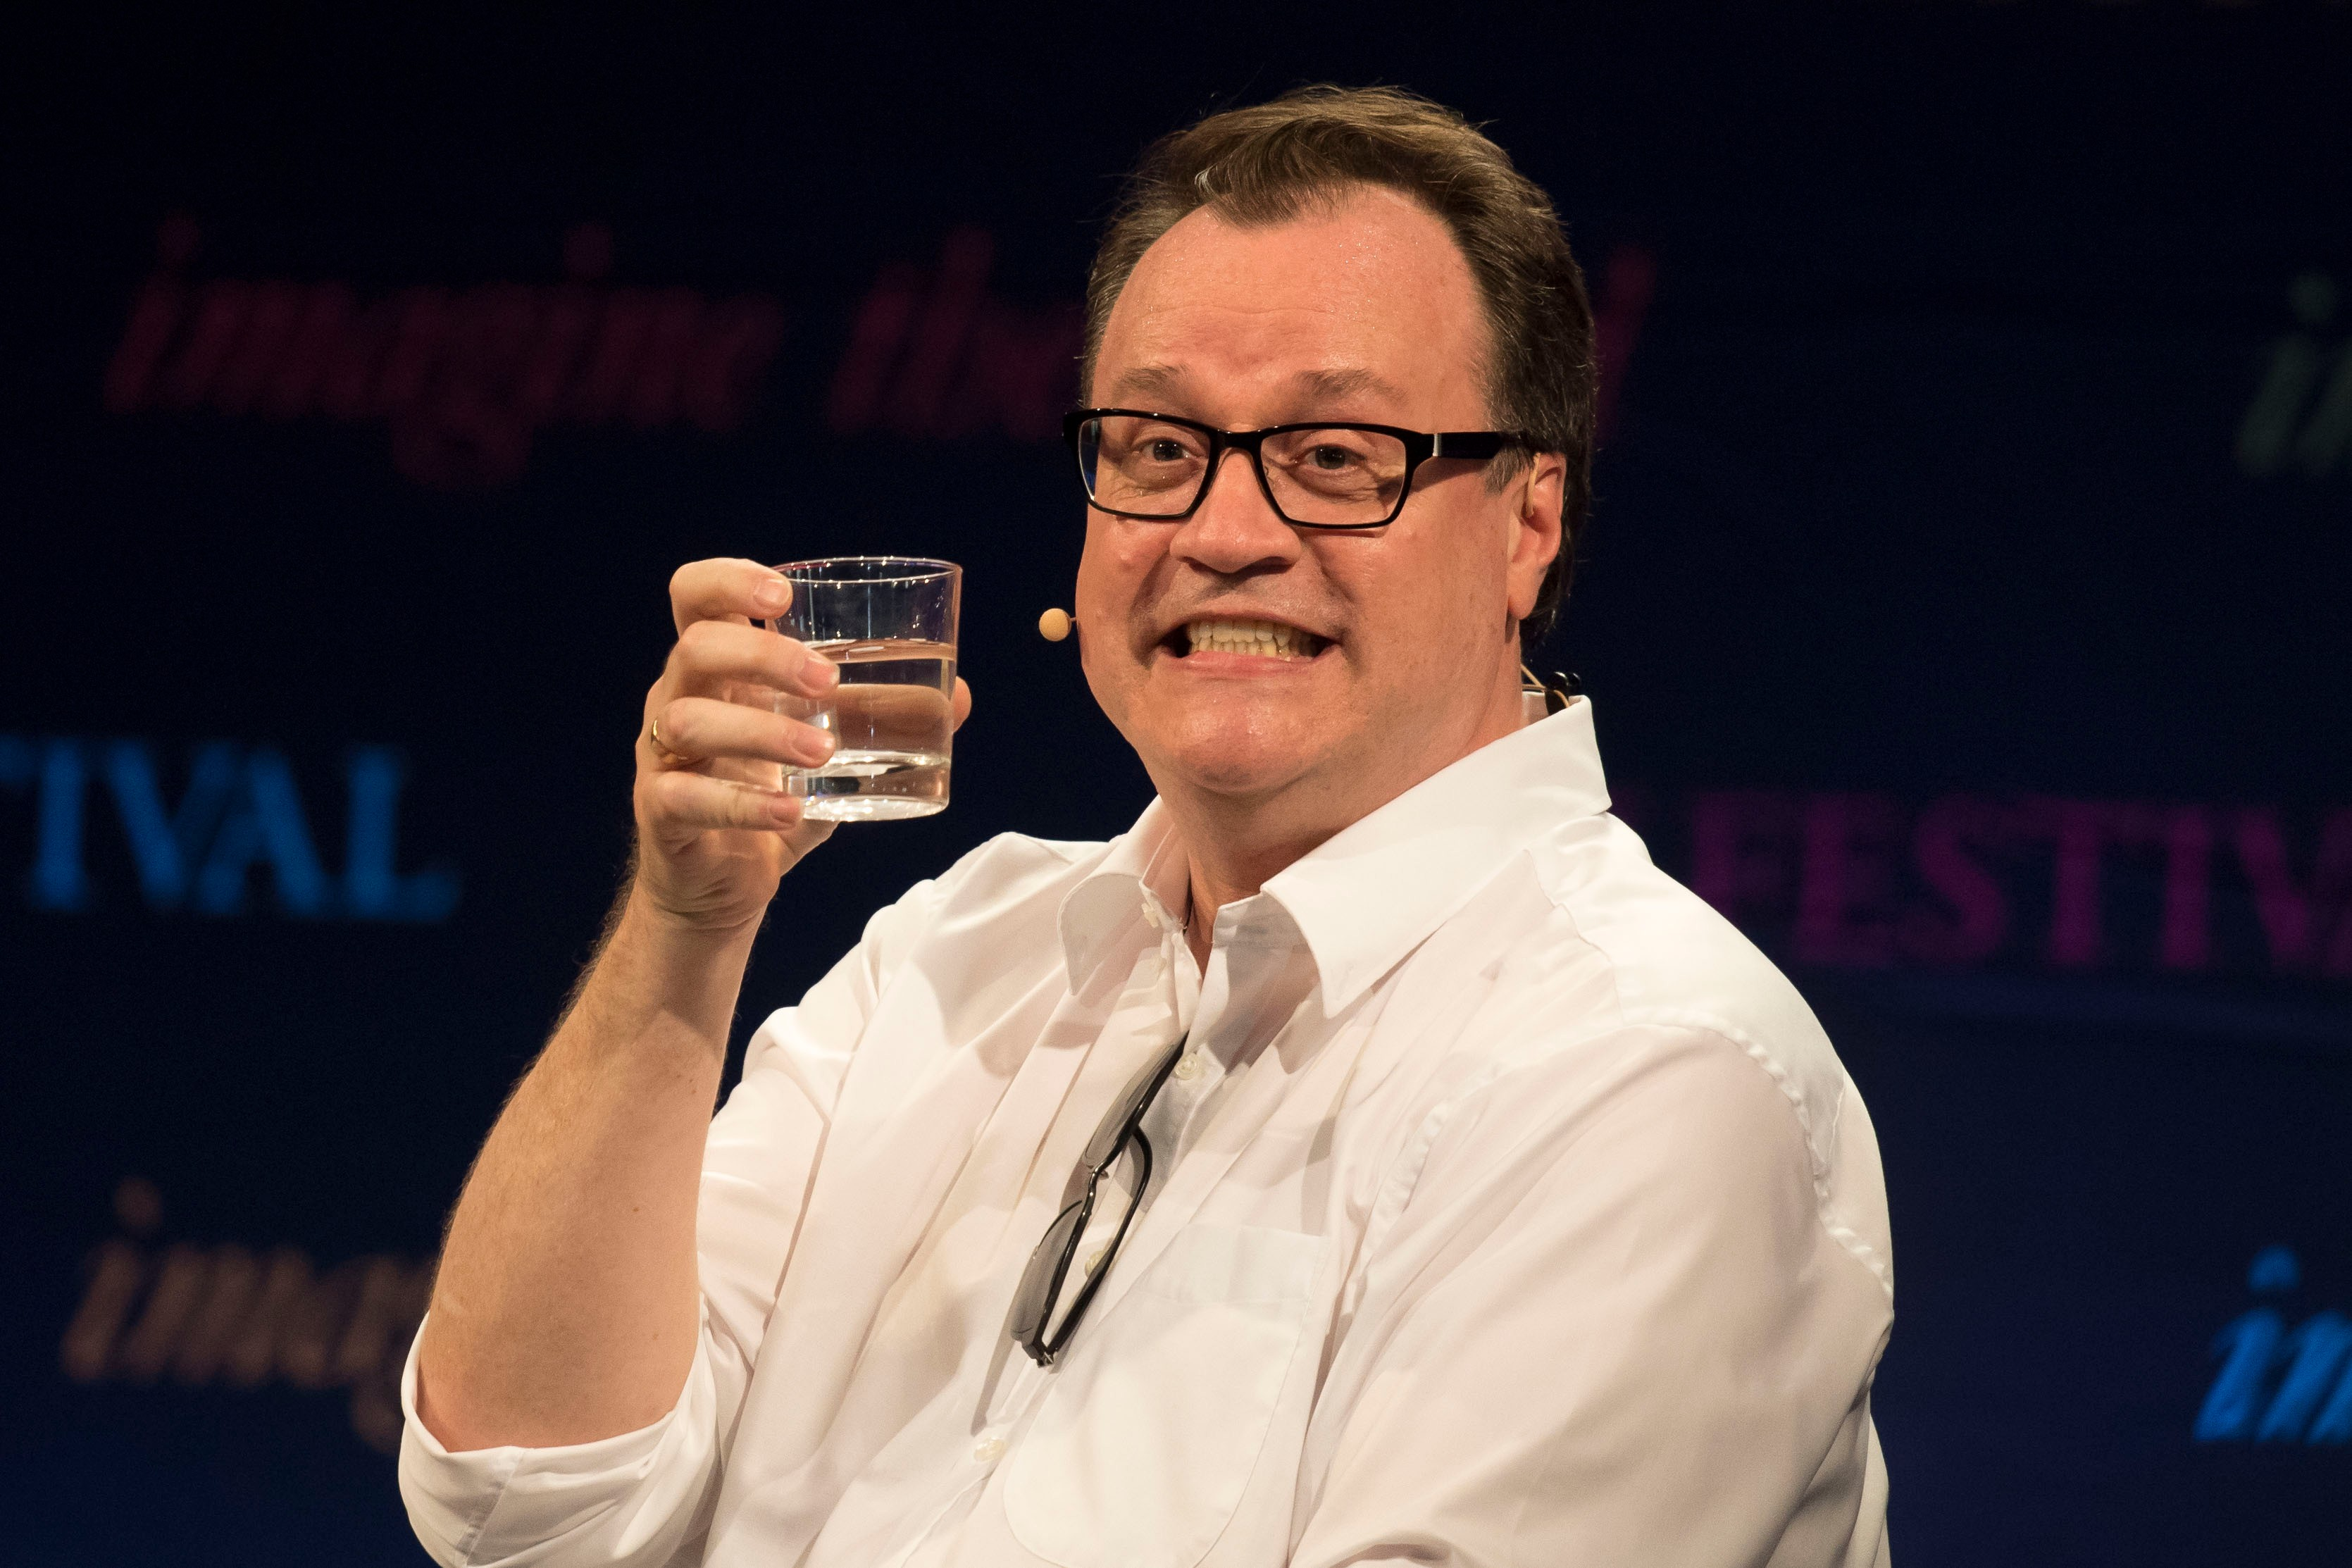 HAY-ON-WYE, WALES - MAY 29:  Russell T Davies, Welsh television producer and screenwriter whose work includes the 2005 revival of Doctor Who, during the 2016 Hay Festival on May 29, 2016 in Hay-on-Wye, Wales. The Hay Festival is an annual festival of literature and arts now in its 29th year.  (Photo by Matthew Horwood/Getty Images)  TL